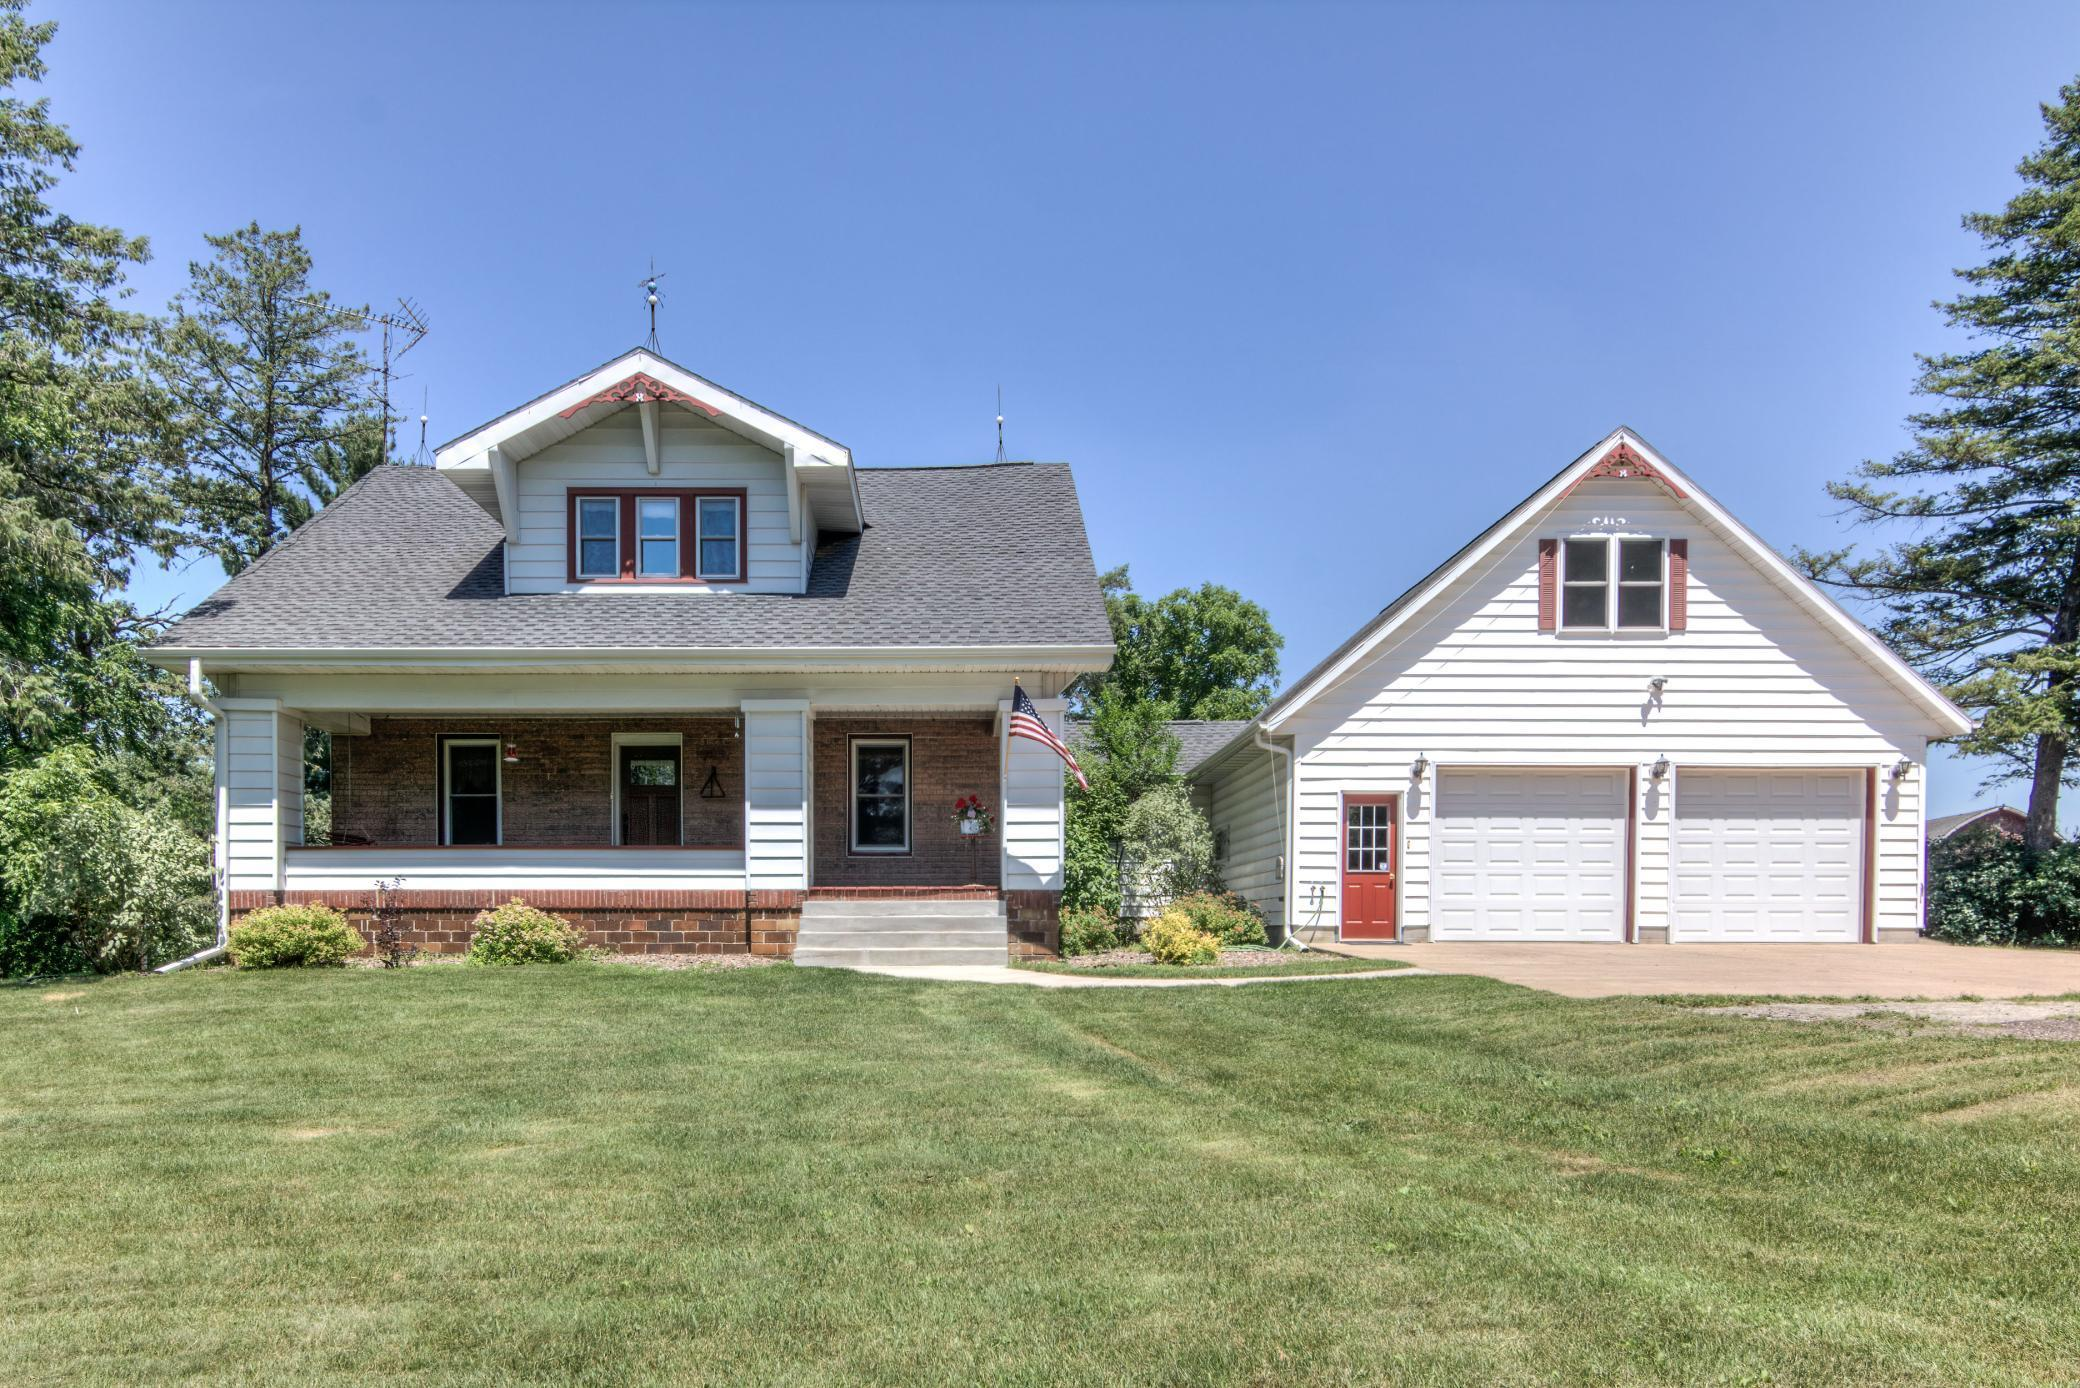 W13434 Call Property Photo - Osseo, WI real estate listing